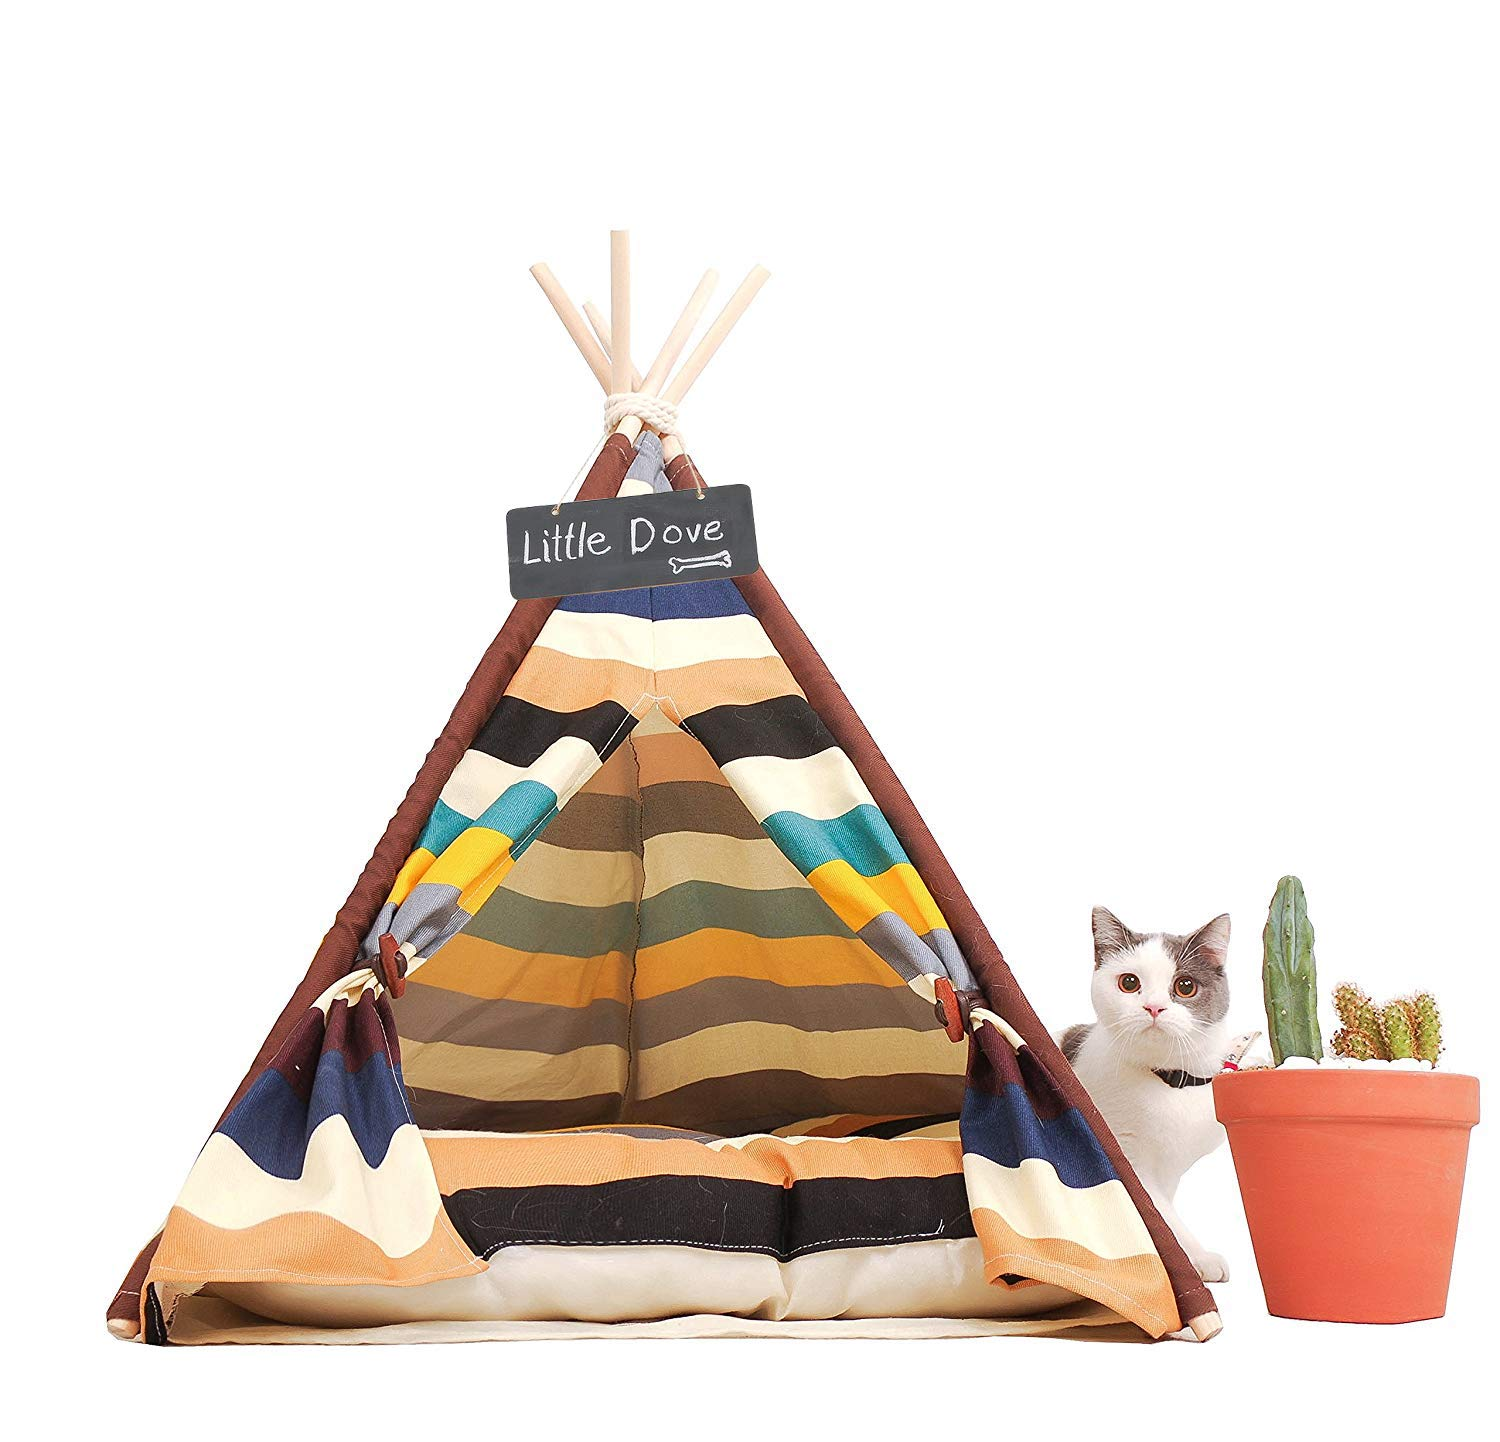 little dove Pet Teepee Dog(Puppy) & Cat Bed - Portable Pet Tents & Houses for Dog(Puppy) & Cat Colorful Style 28 Inch with Thick Cushion by little dove